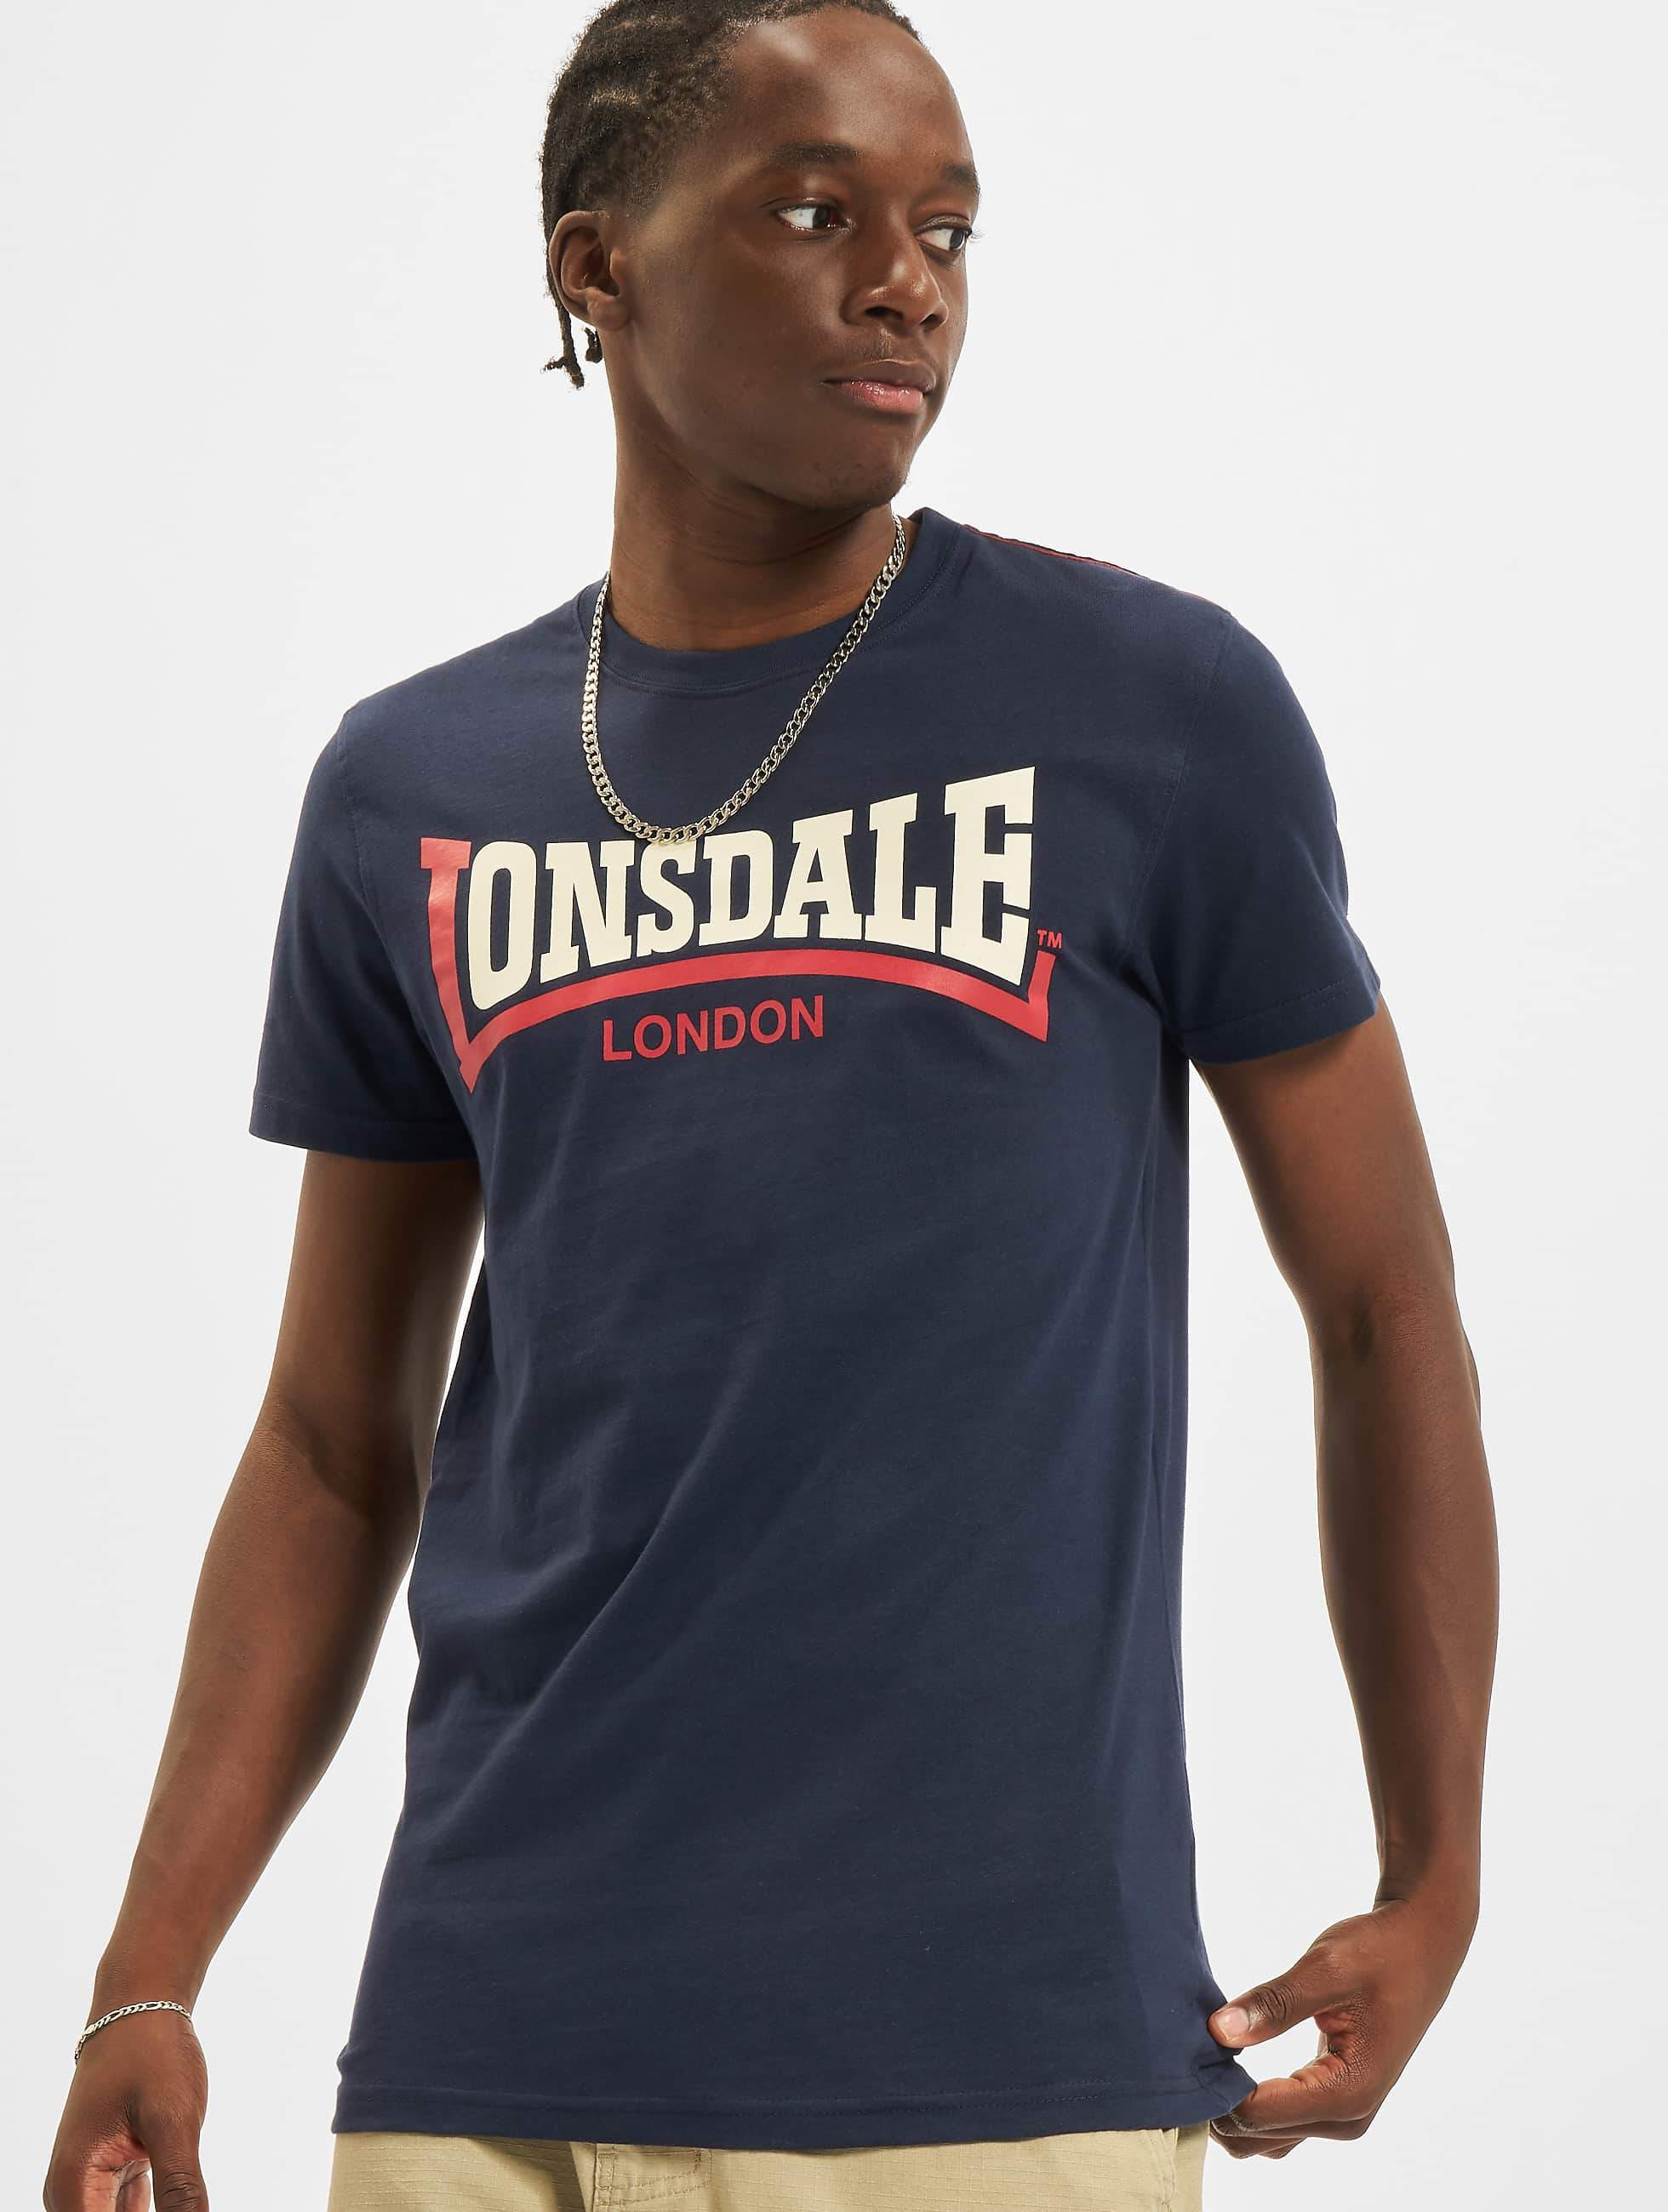 buy online 8e298 169c1 Lonsdale London Two Tone T-Shirt Navy